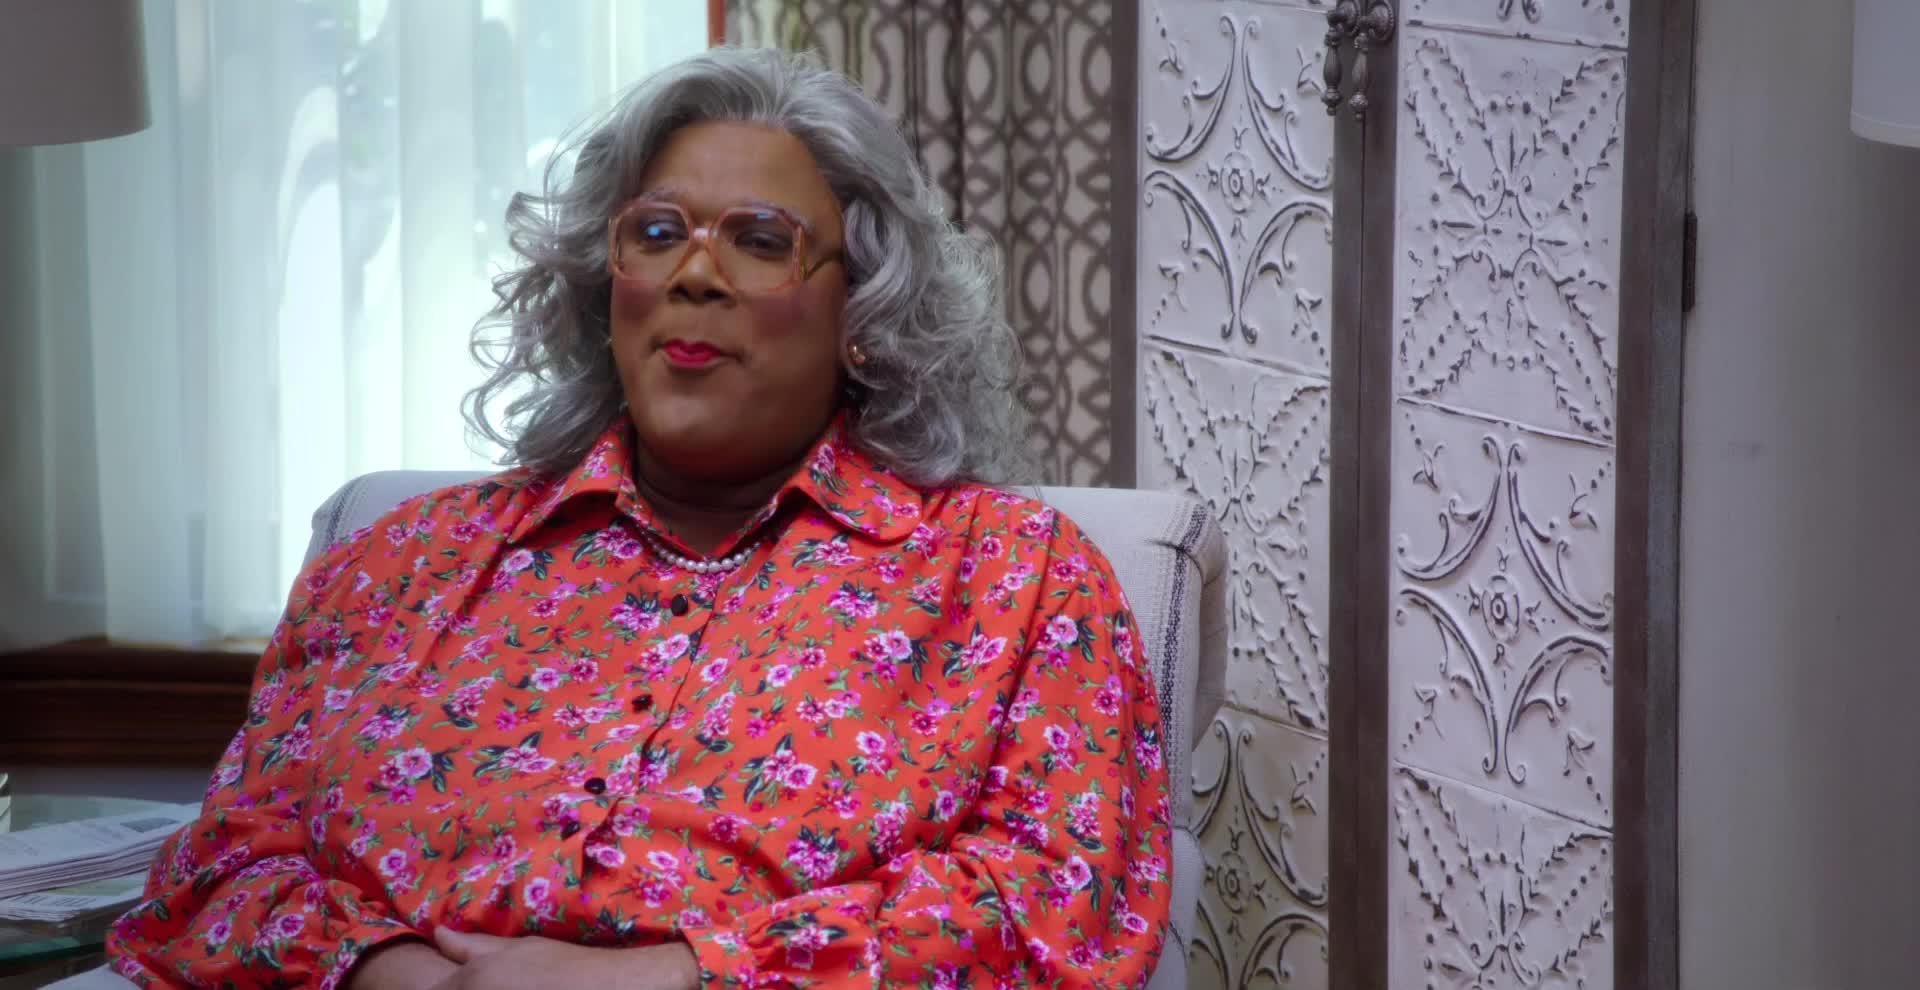 BOO 2!, Lionsgate, Madea, Tyler Perry, Tyler Perry's BOO 2! A Madea Halloween, boo 2!, lionsgate, madea, surprise, tyler perry, tyler perry's boo 2! a madea halloween, Surprise! GIFs